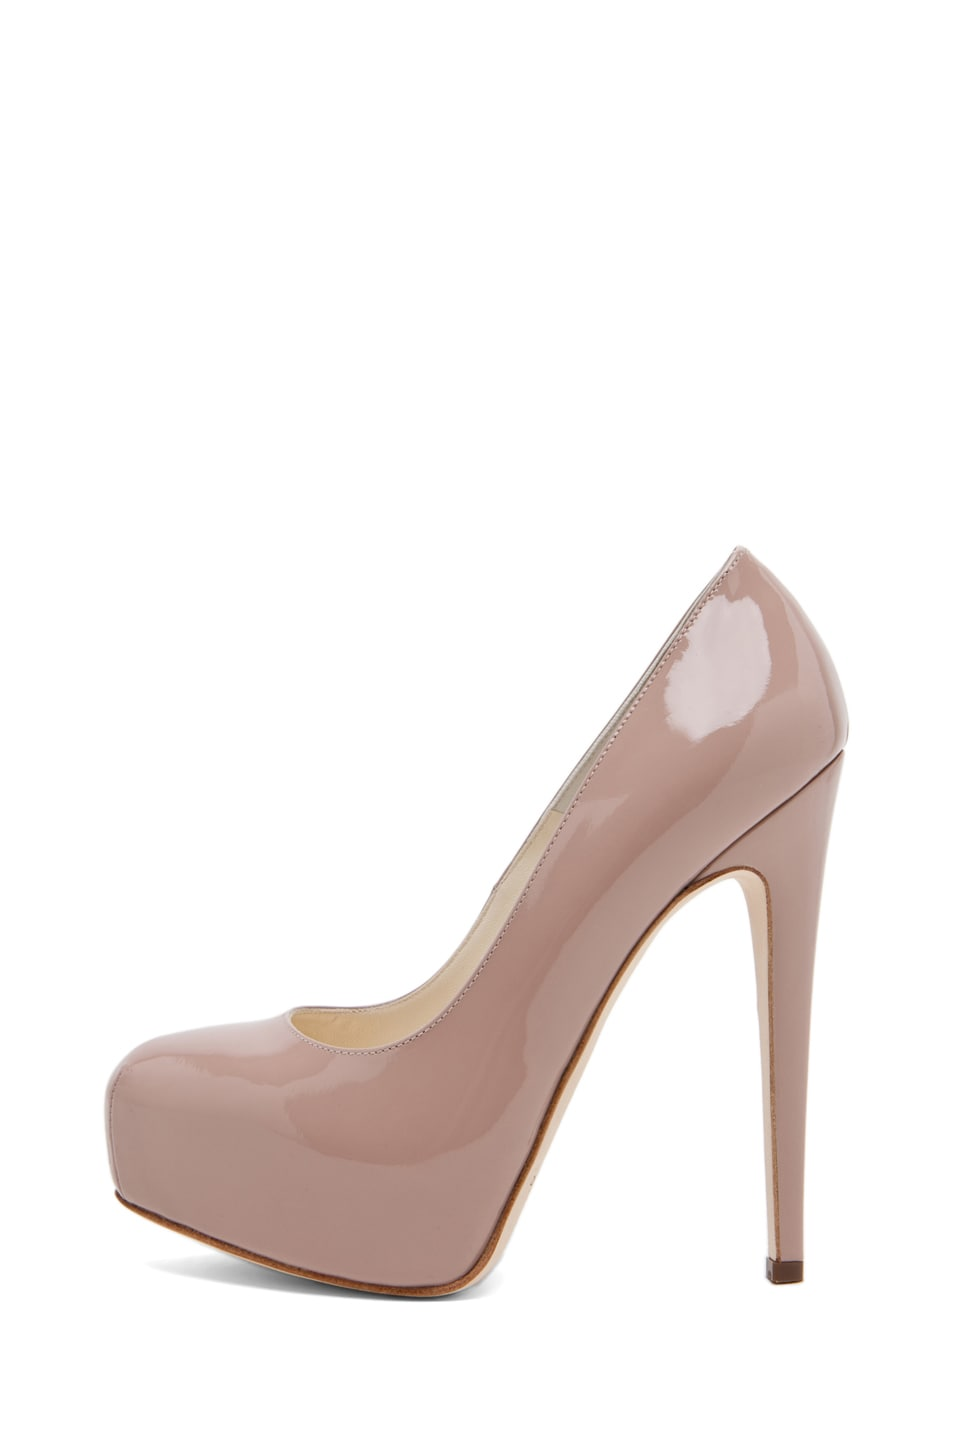 Image 2 of Brian Atwood Maniac Pump in Cappuccino Nude